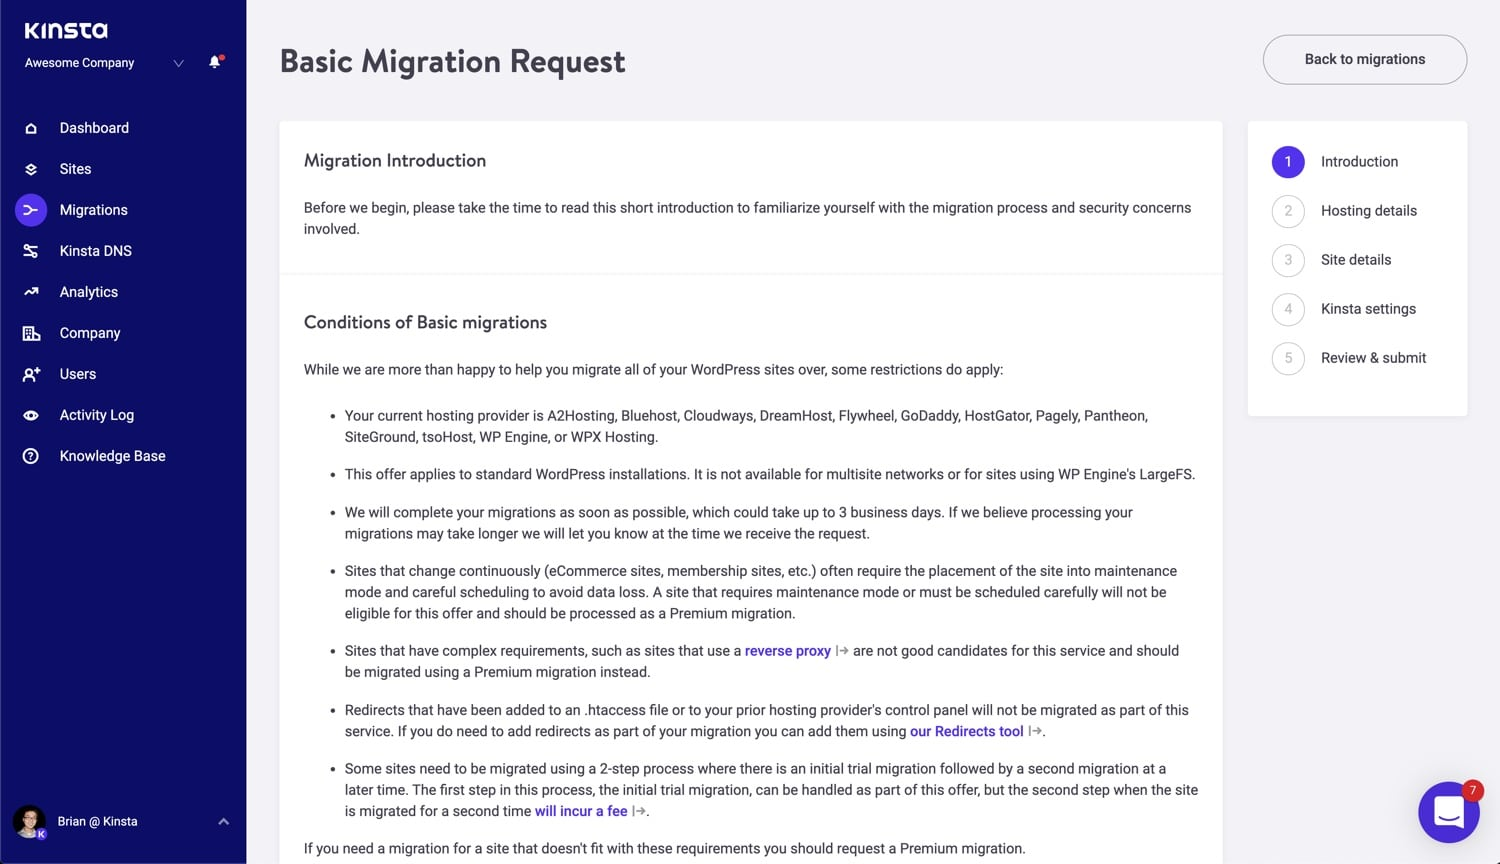 Kinsta basic migration introduction.